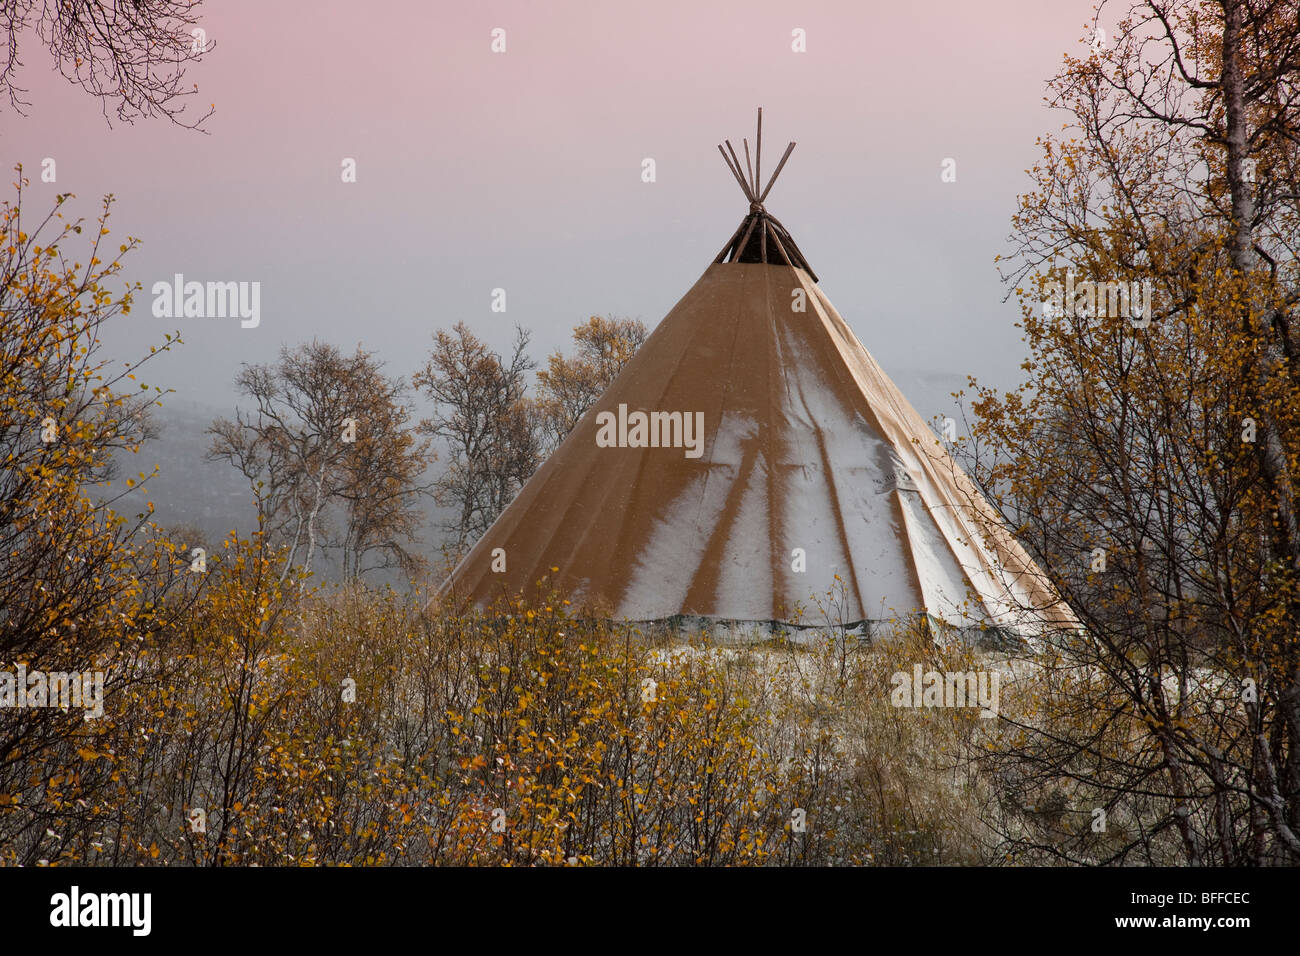 Traditional sami hut tent cot and birch forest in autumn with first snow and view over snowy forest - Stock Image